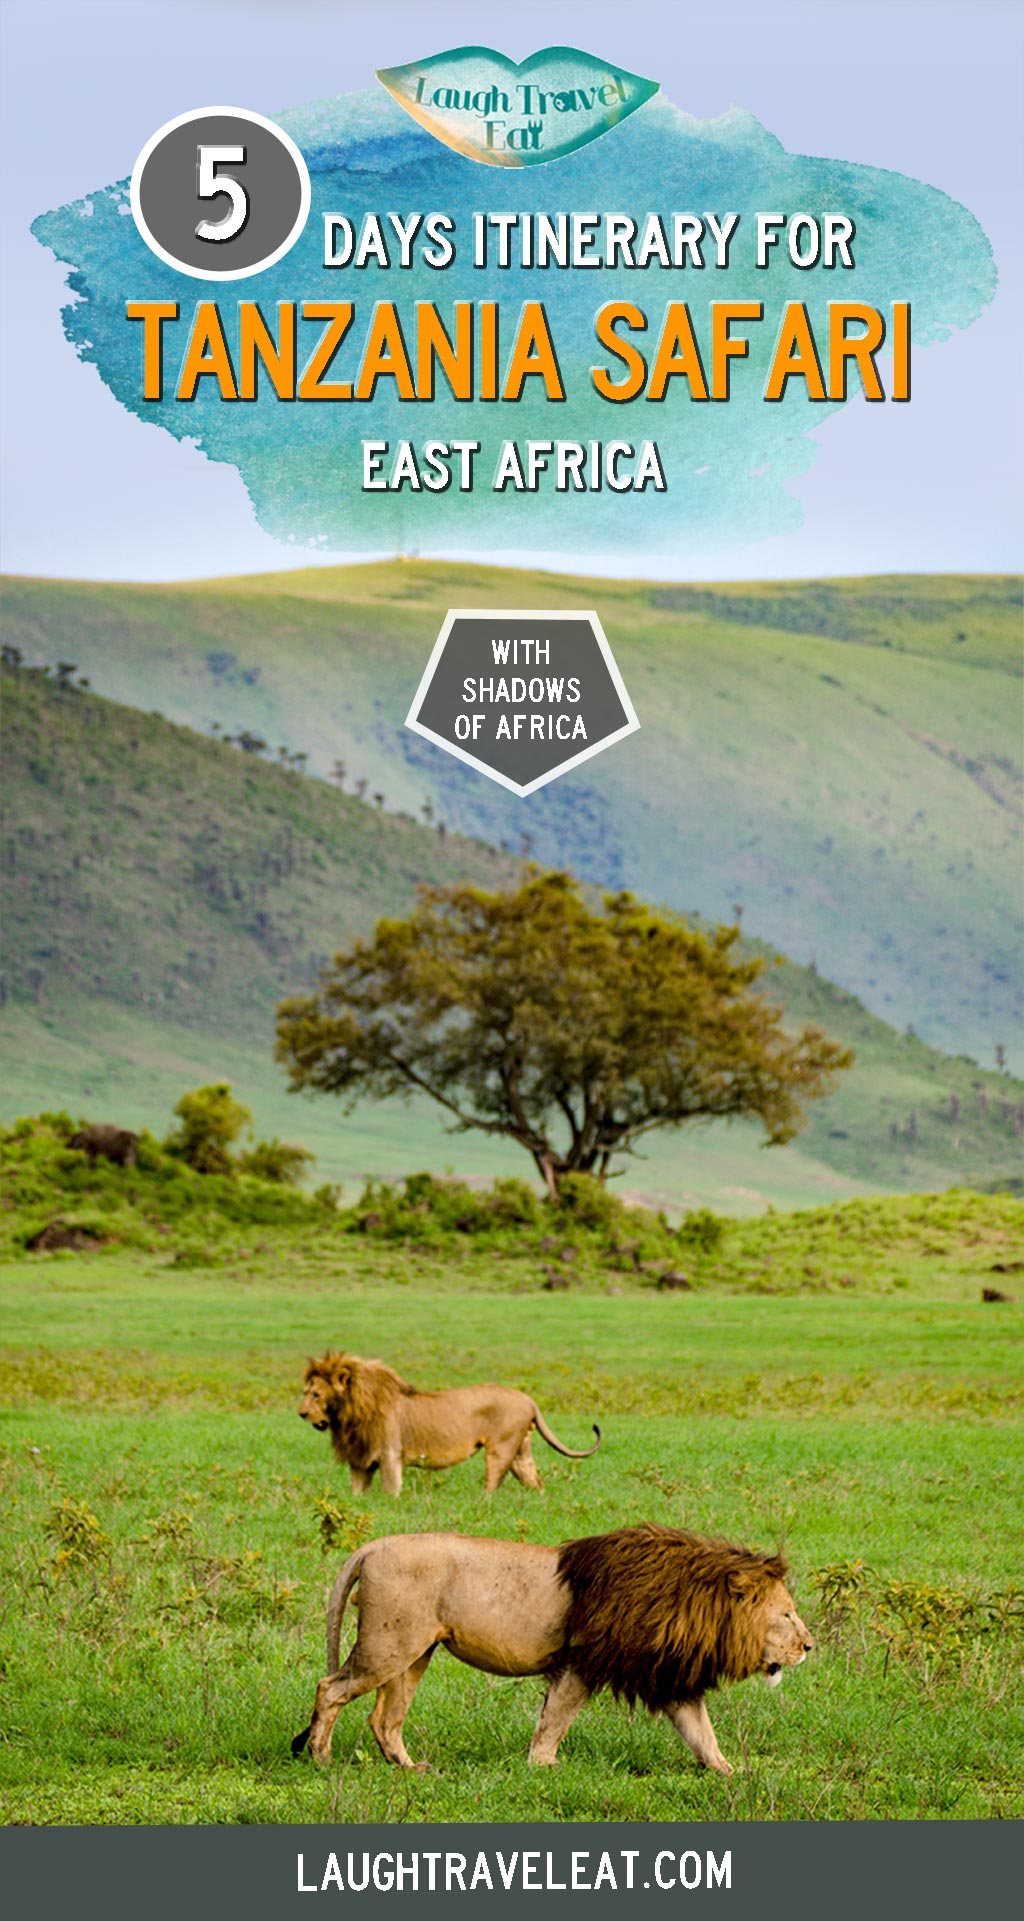 Going on a safari in Tanzania isn't as expensive as one thinks. I have covered Tanzania Safari tips in this post, so this is more about picking an itinerary and what our 5-day safari is like with Shadows of Africa. Aside from seeing wild animals in national parks, we also pay a visit to local tribes including one that still practice hunter-gatherer: #Tanzania #Safari #Africa